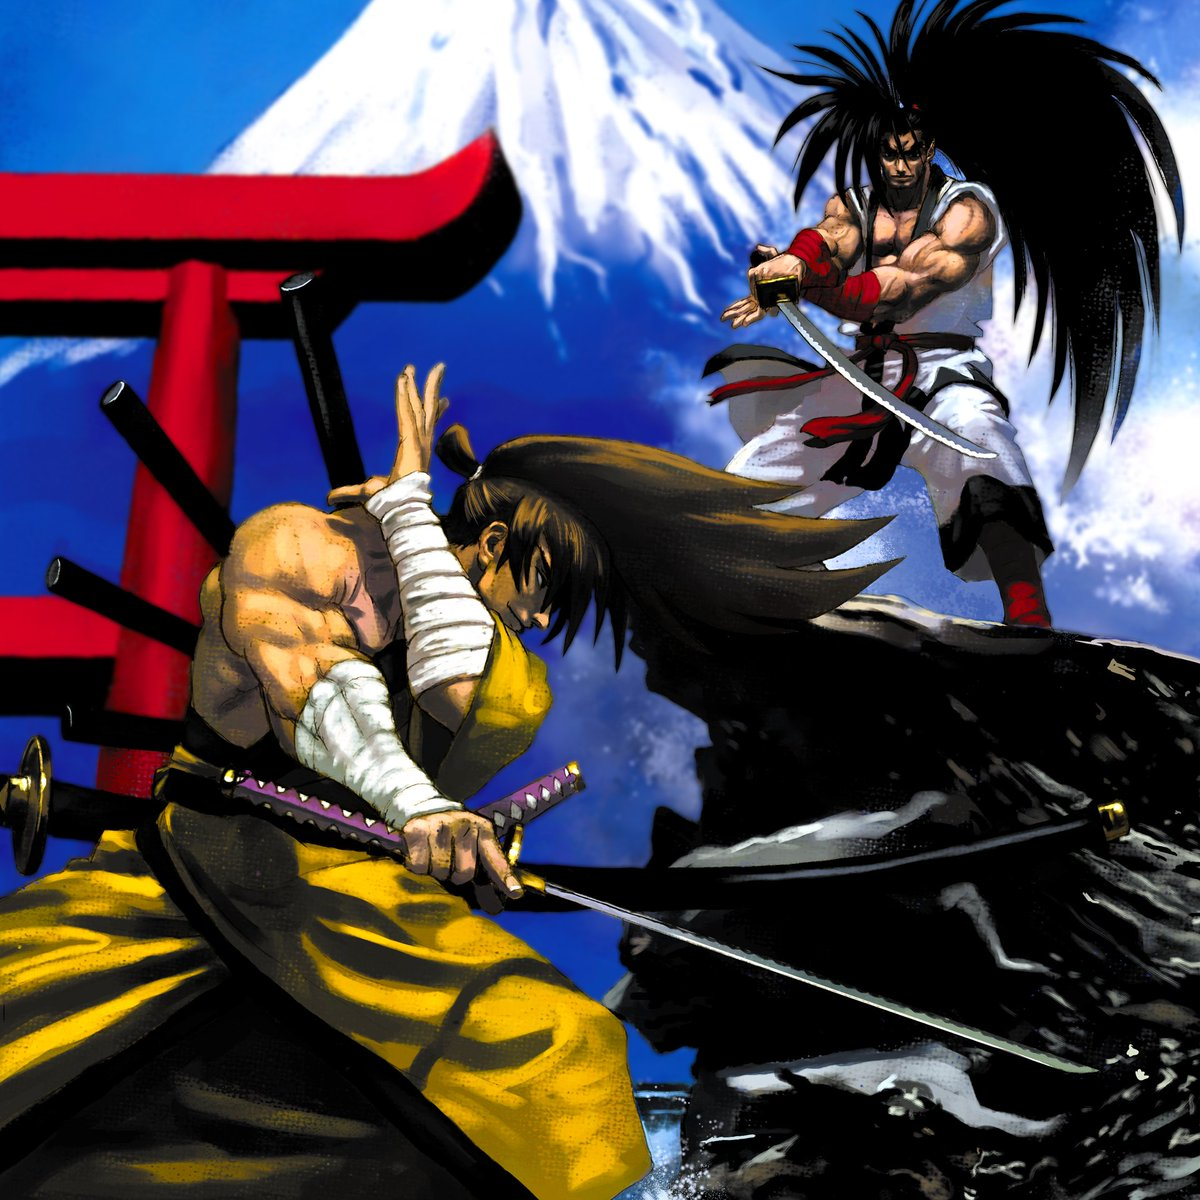 Samurai Shodown V Special is one of the most fun, accessible